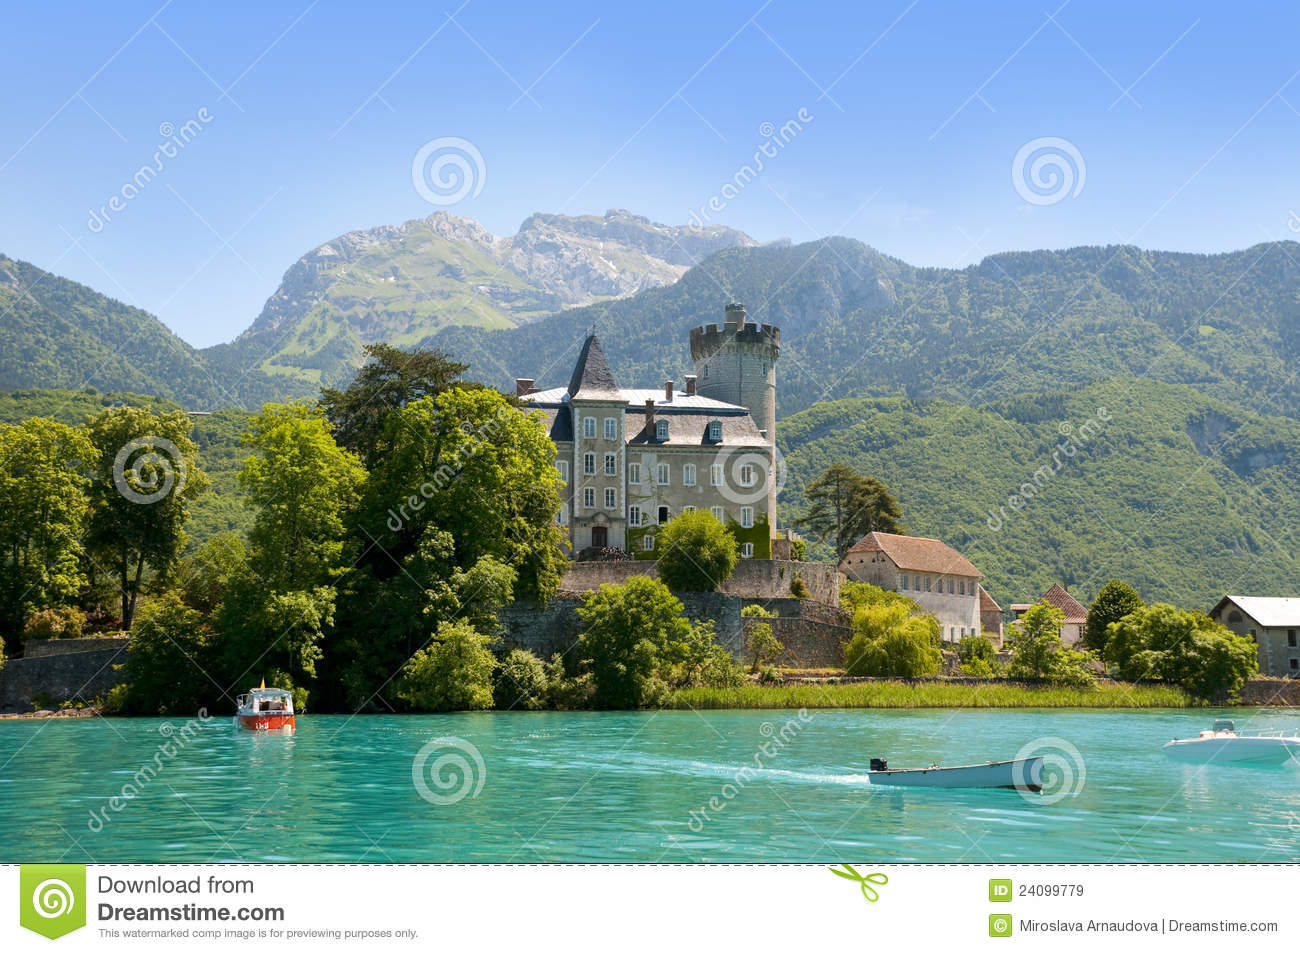 Lake Annecy clipart #10, Download drawings